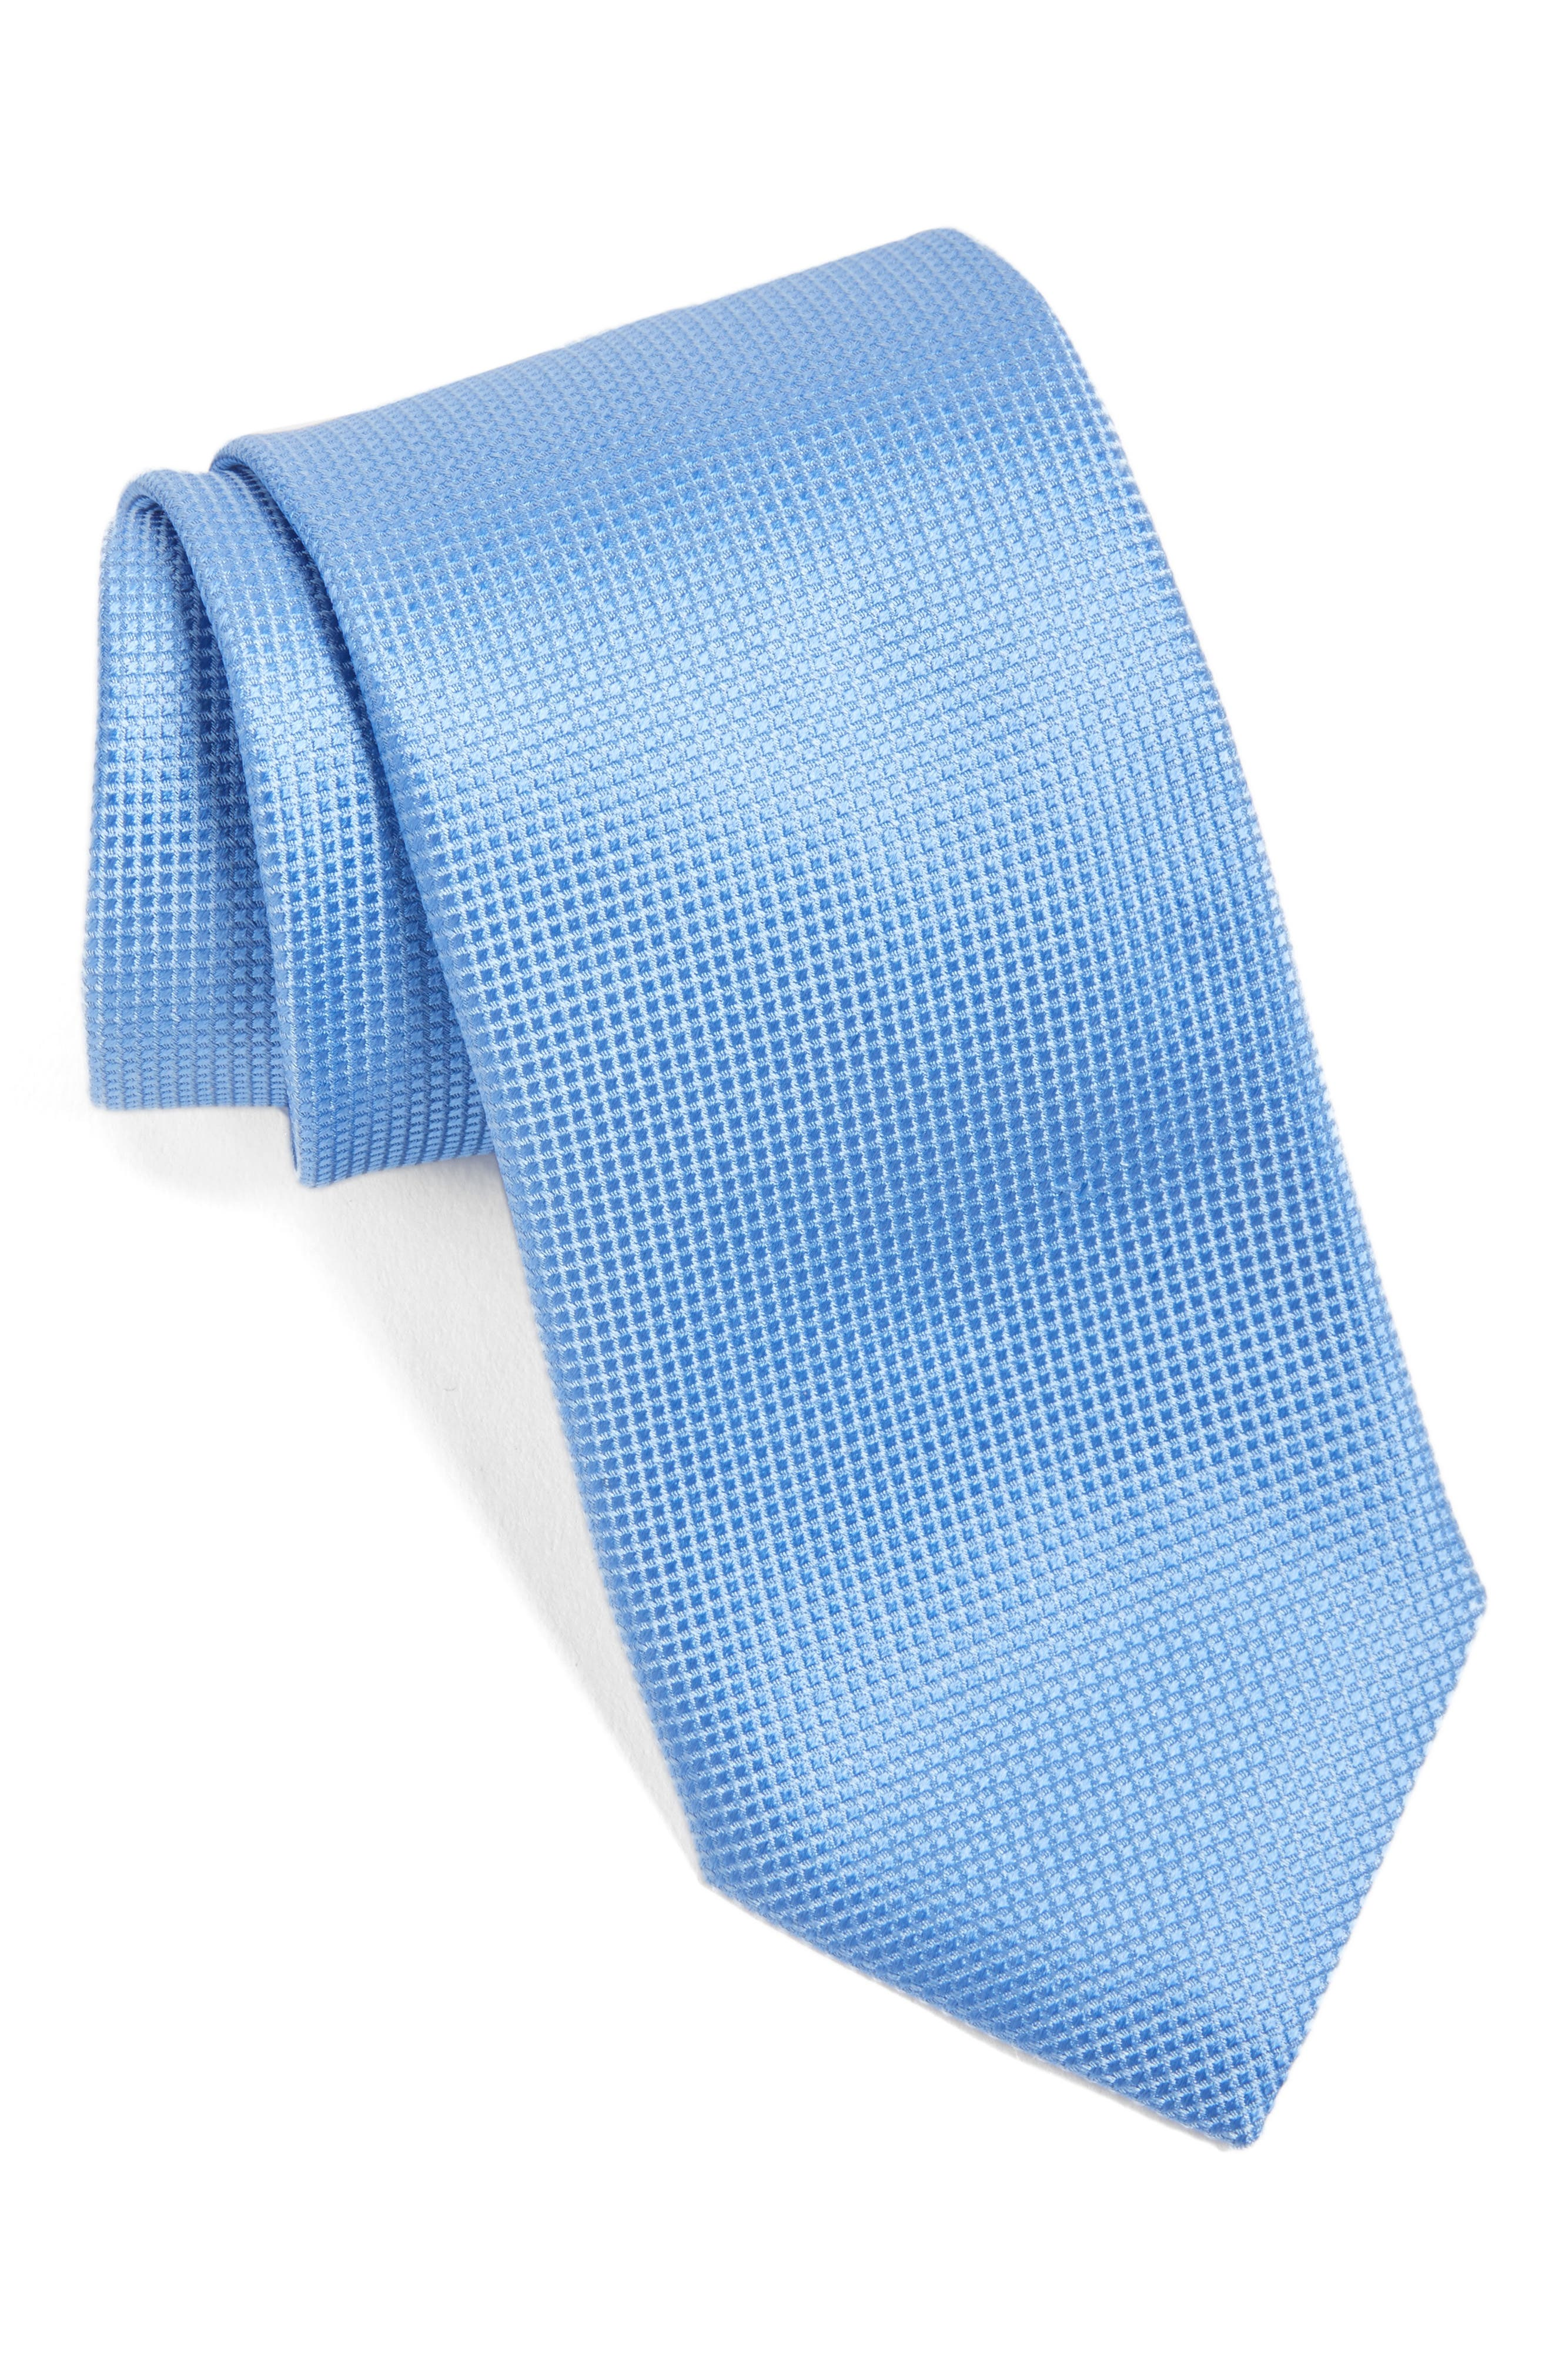 Alternate Image 1 Selected - Canali Solid Silk Tie